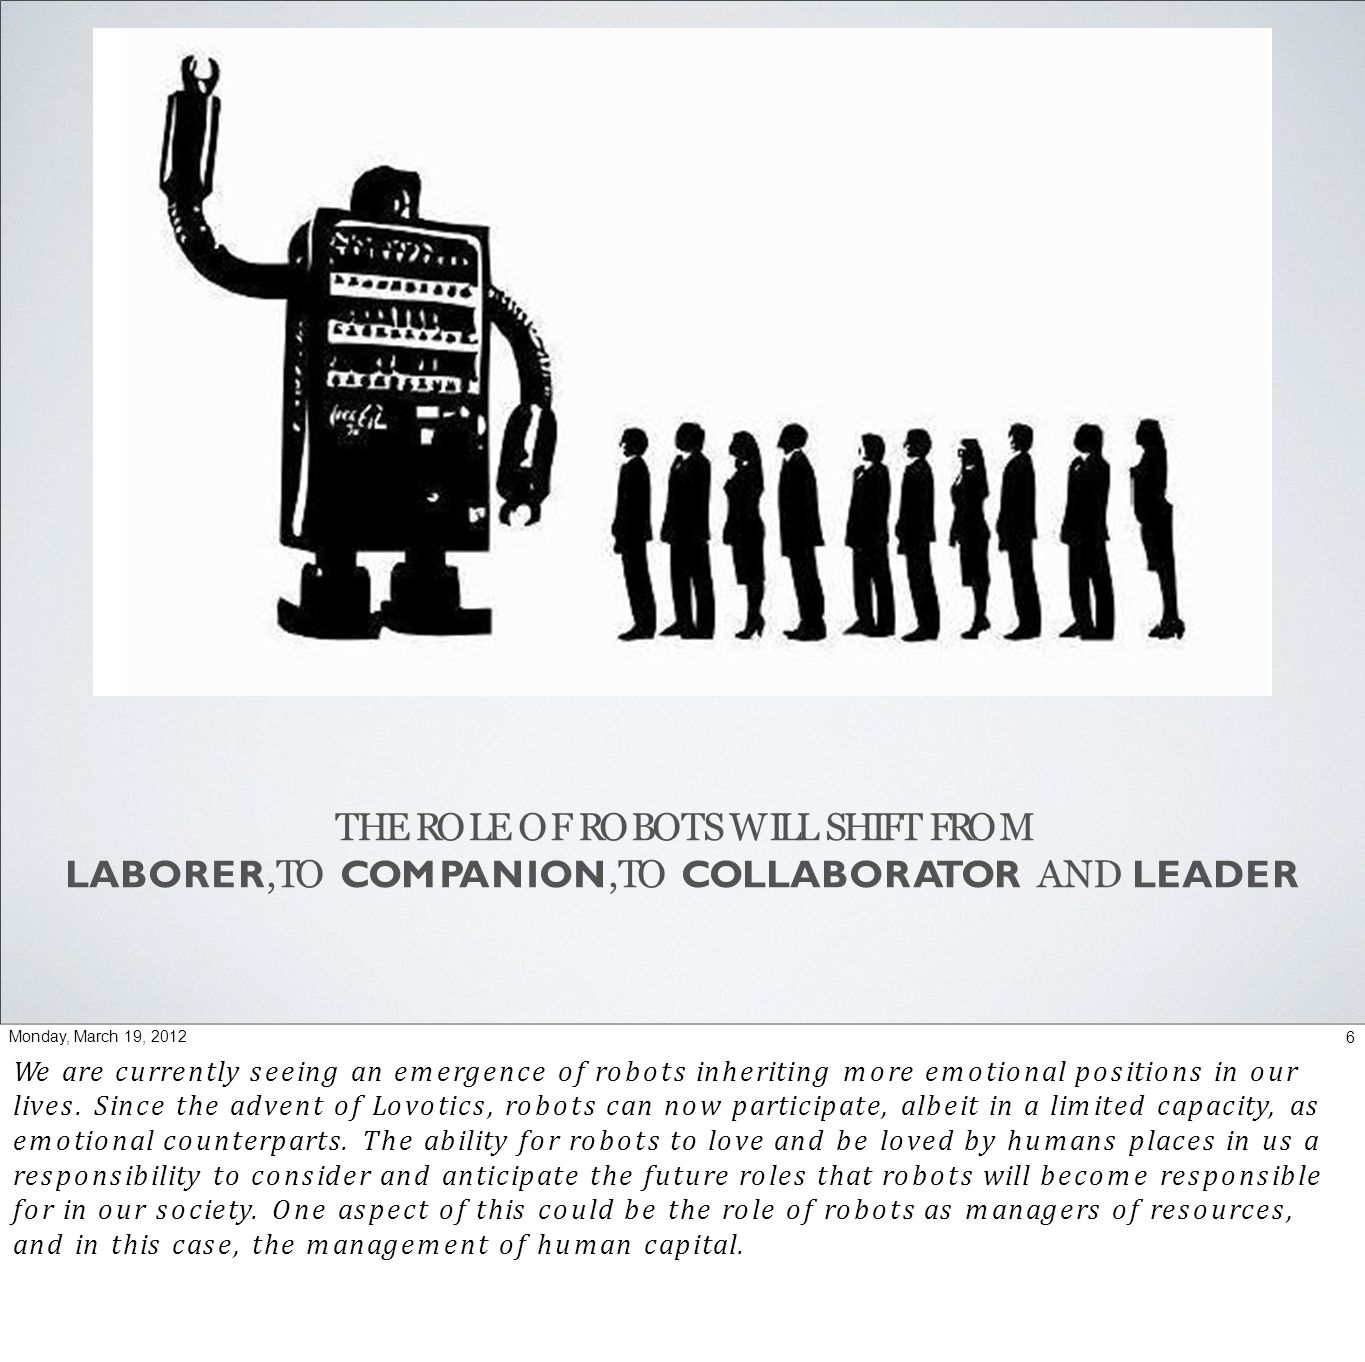 THE ROLE OF ROBOTS WILL SHIFT FROM LABORER,TO COMPANION,TO COLLABORATOR AND LEADER 6Monday, March 19, 2012 We are currently seeing an emergence of robots inheriting more emotional positions in our lives.